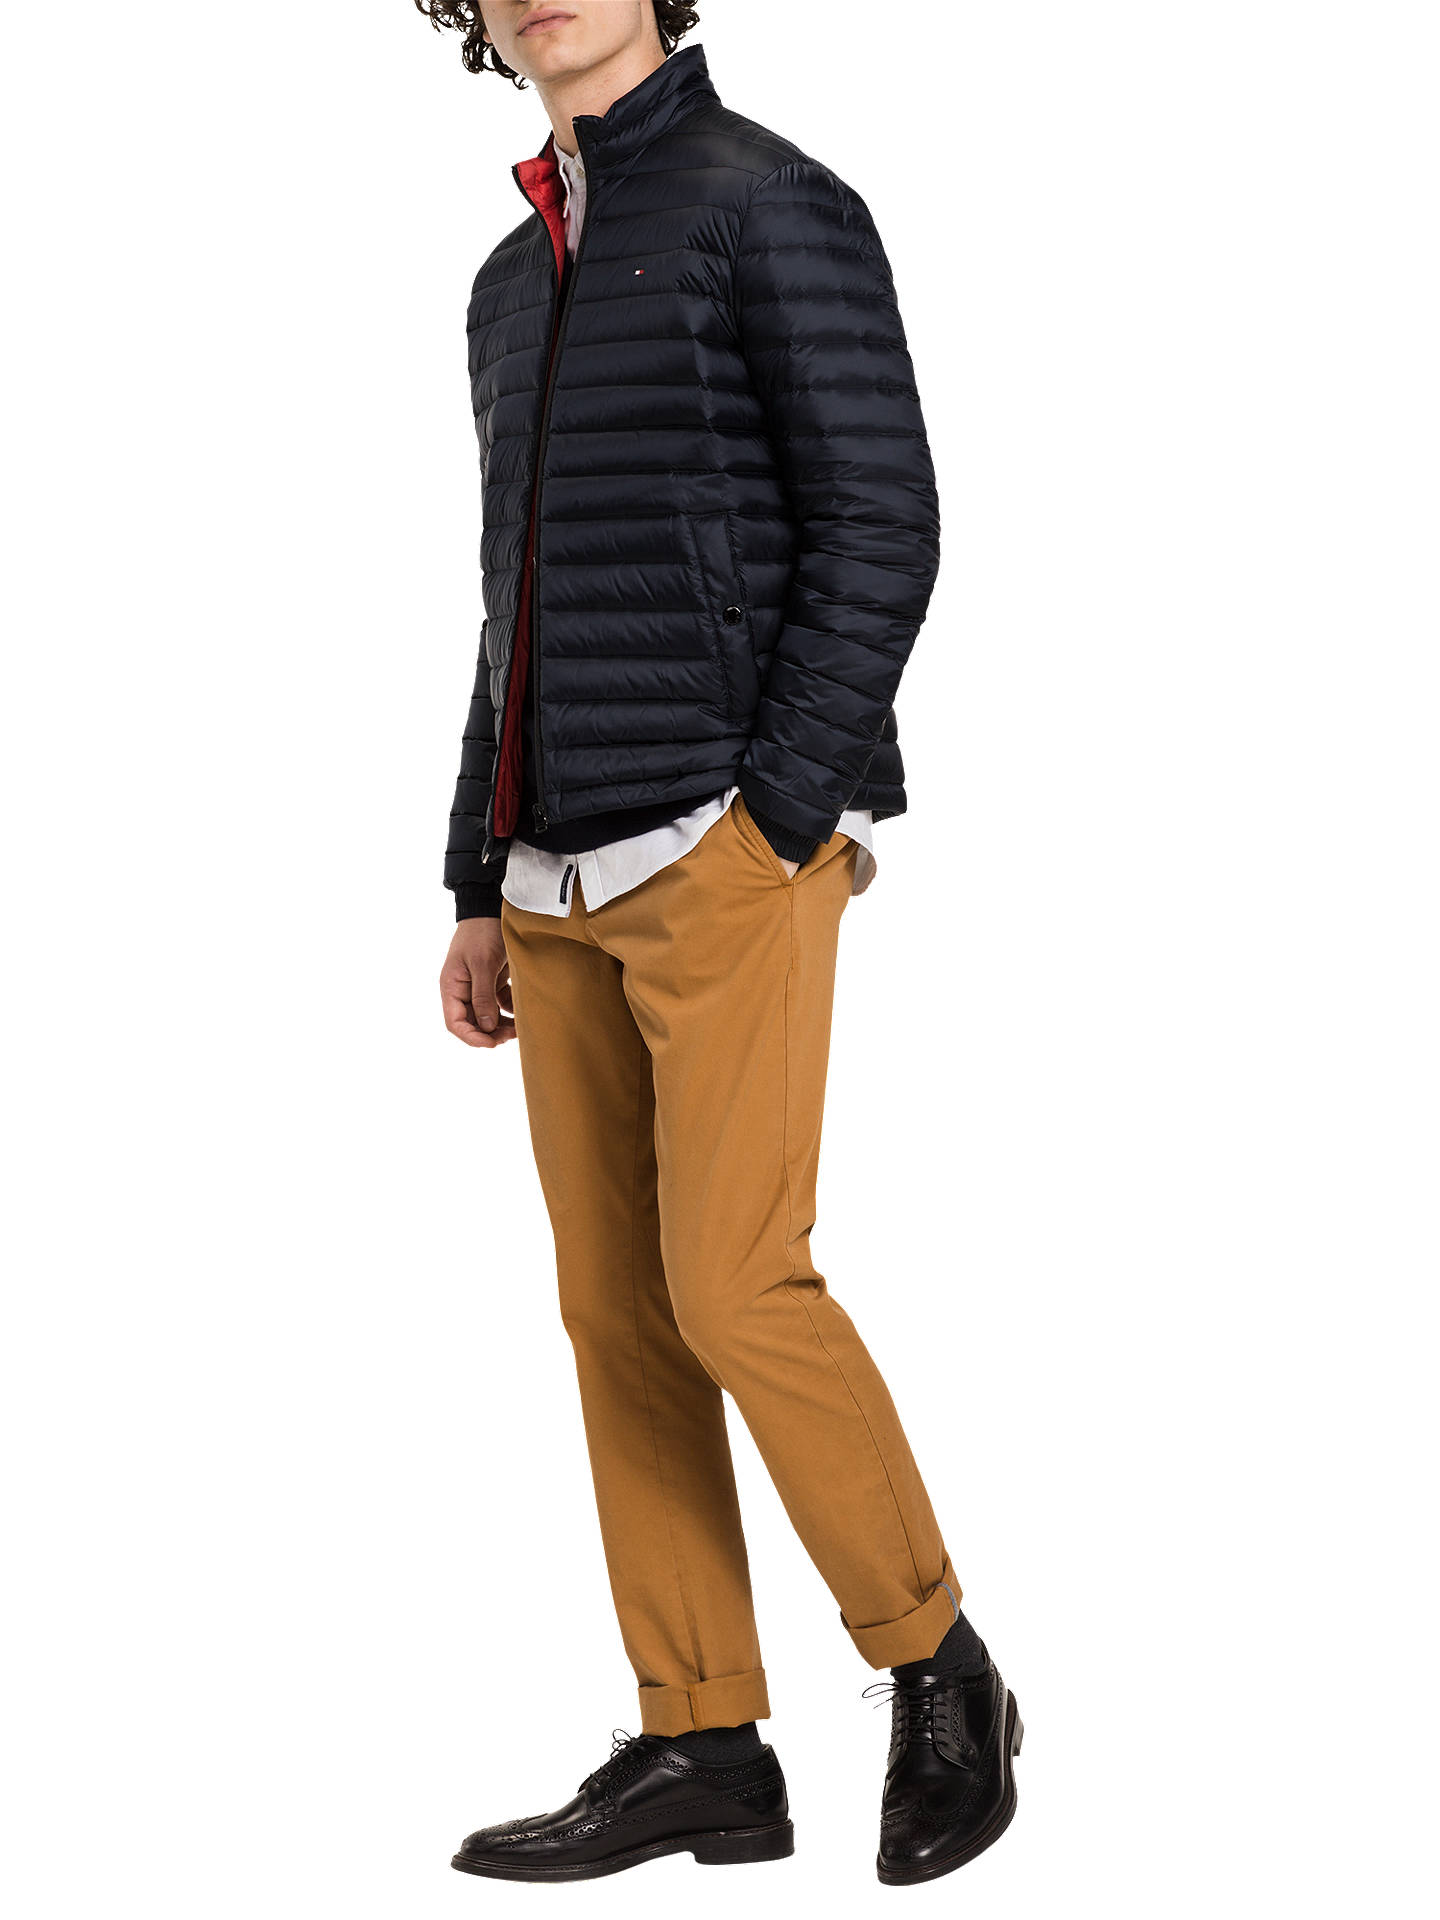 ... BuyTommy Hilfiger Packable Down Bomber Jacket a3cd9117f